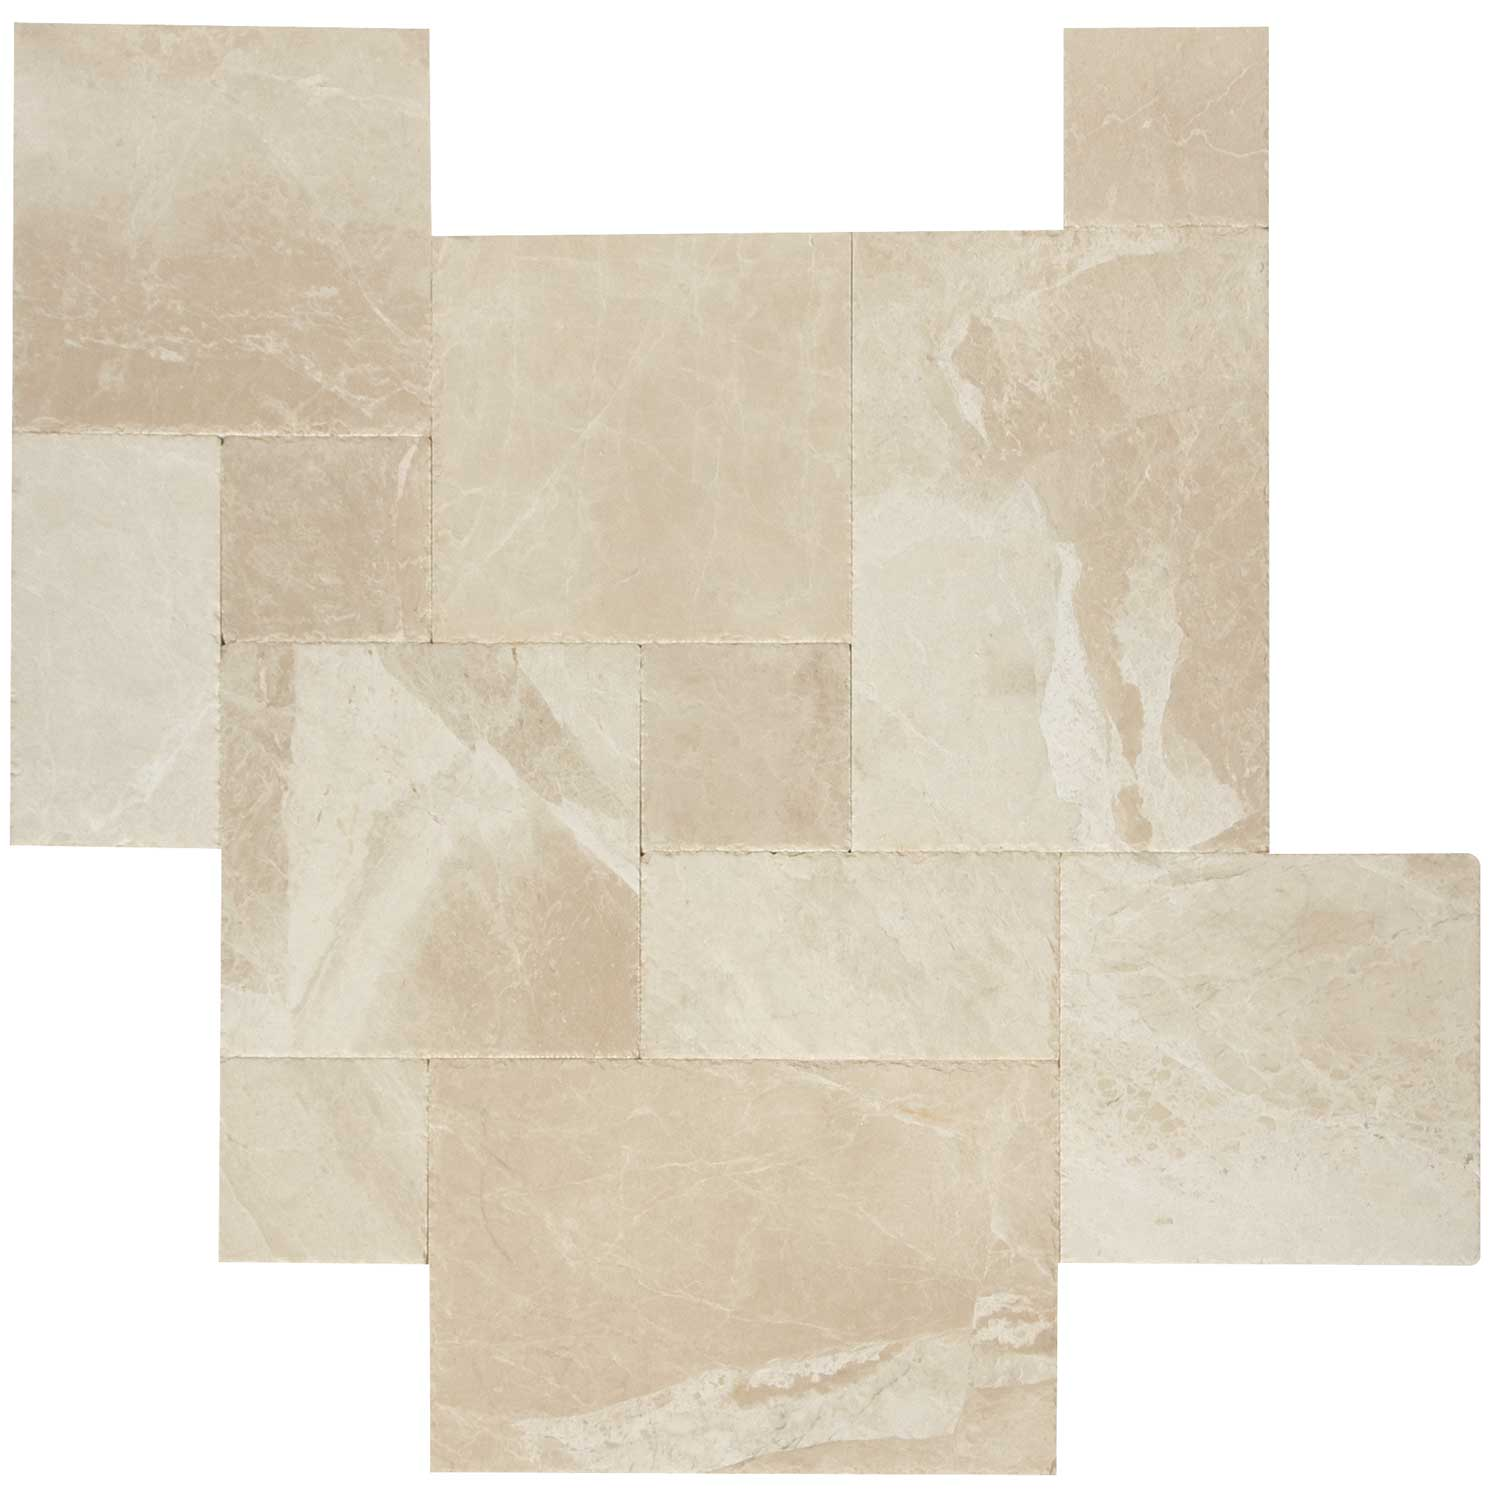 French Pattern Botticino Marble Tiles Brushed & Chiseled